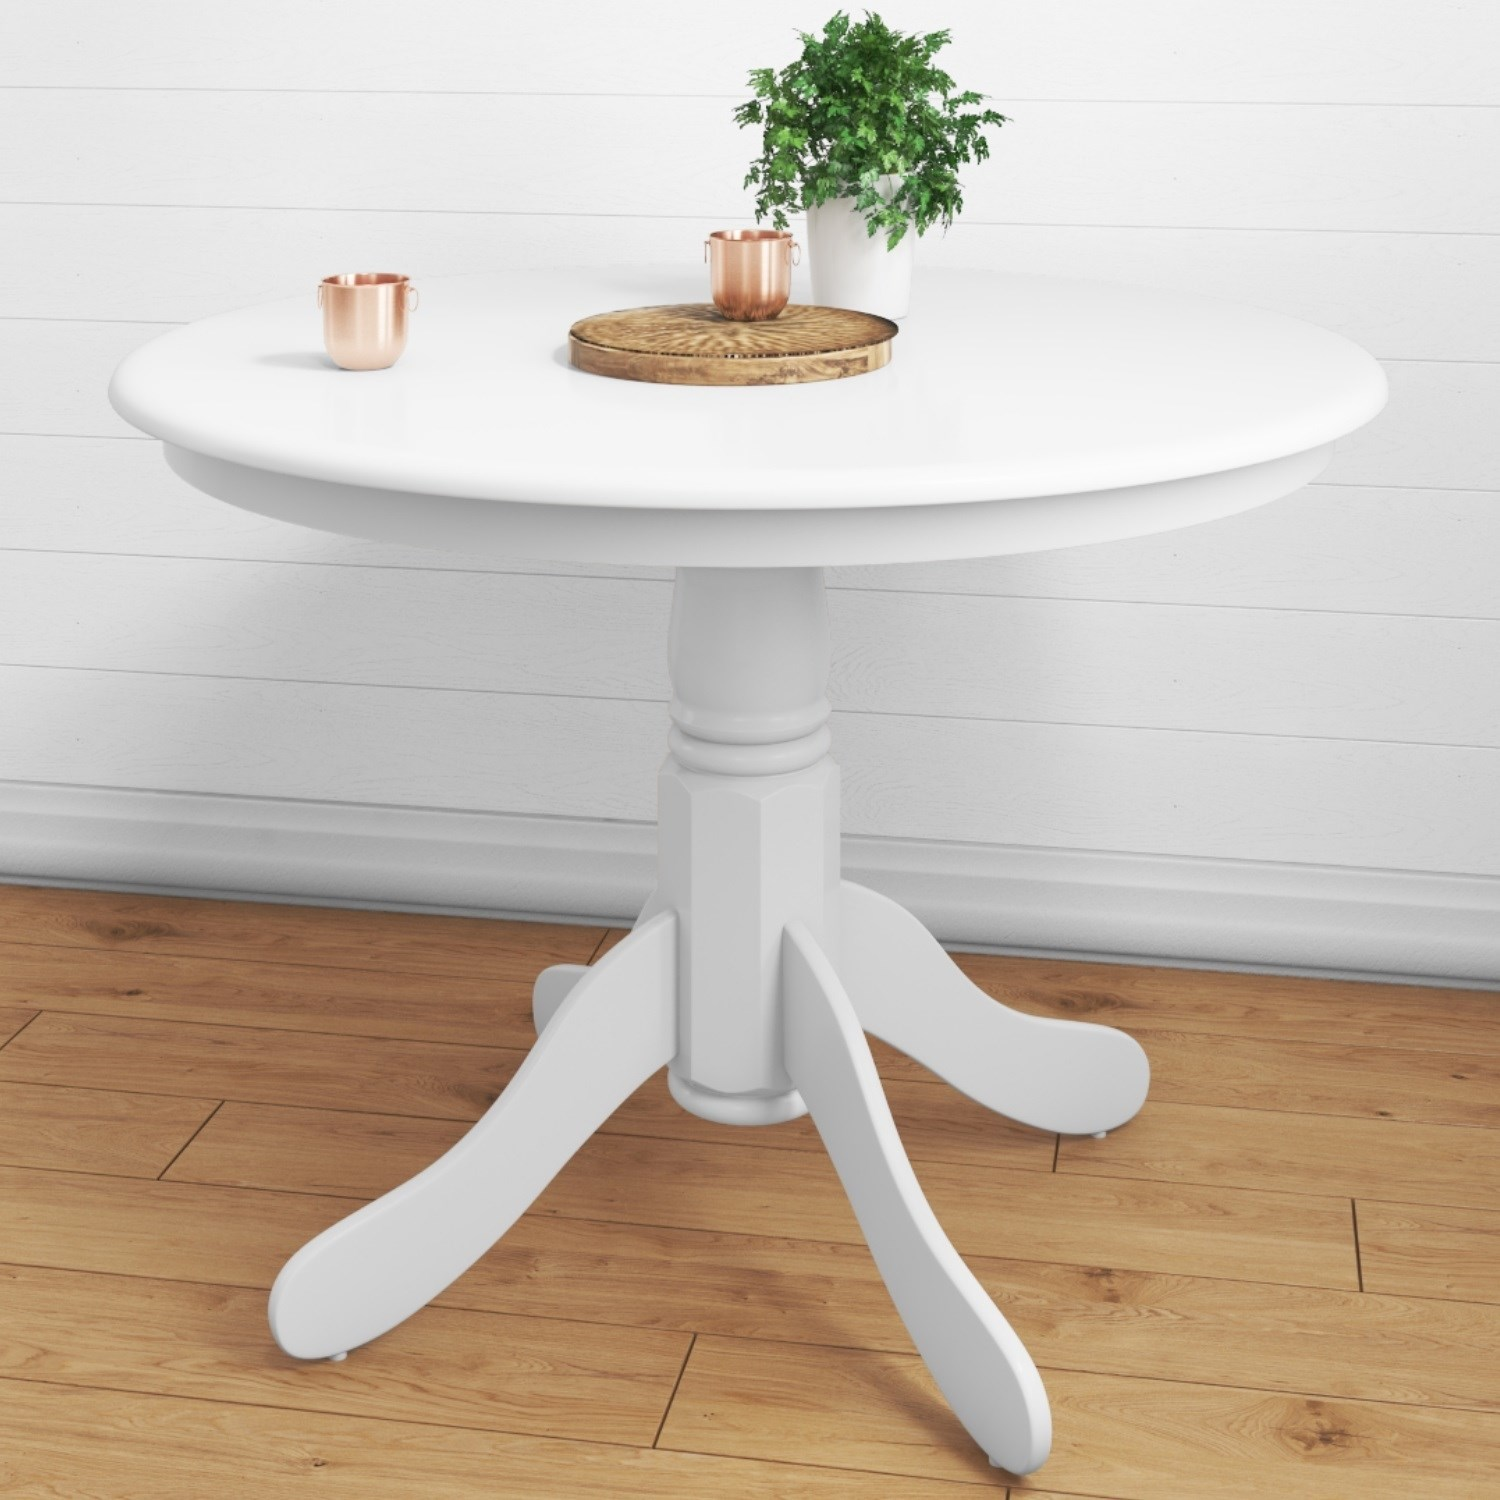 Small Round Dining Table In White Seats 4 Rhode Island Furniture123